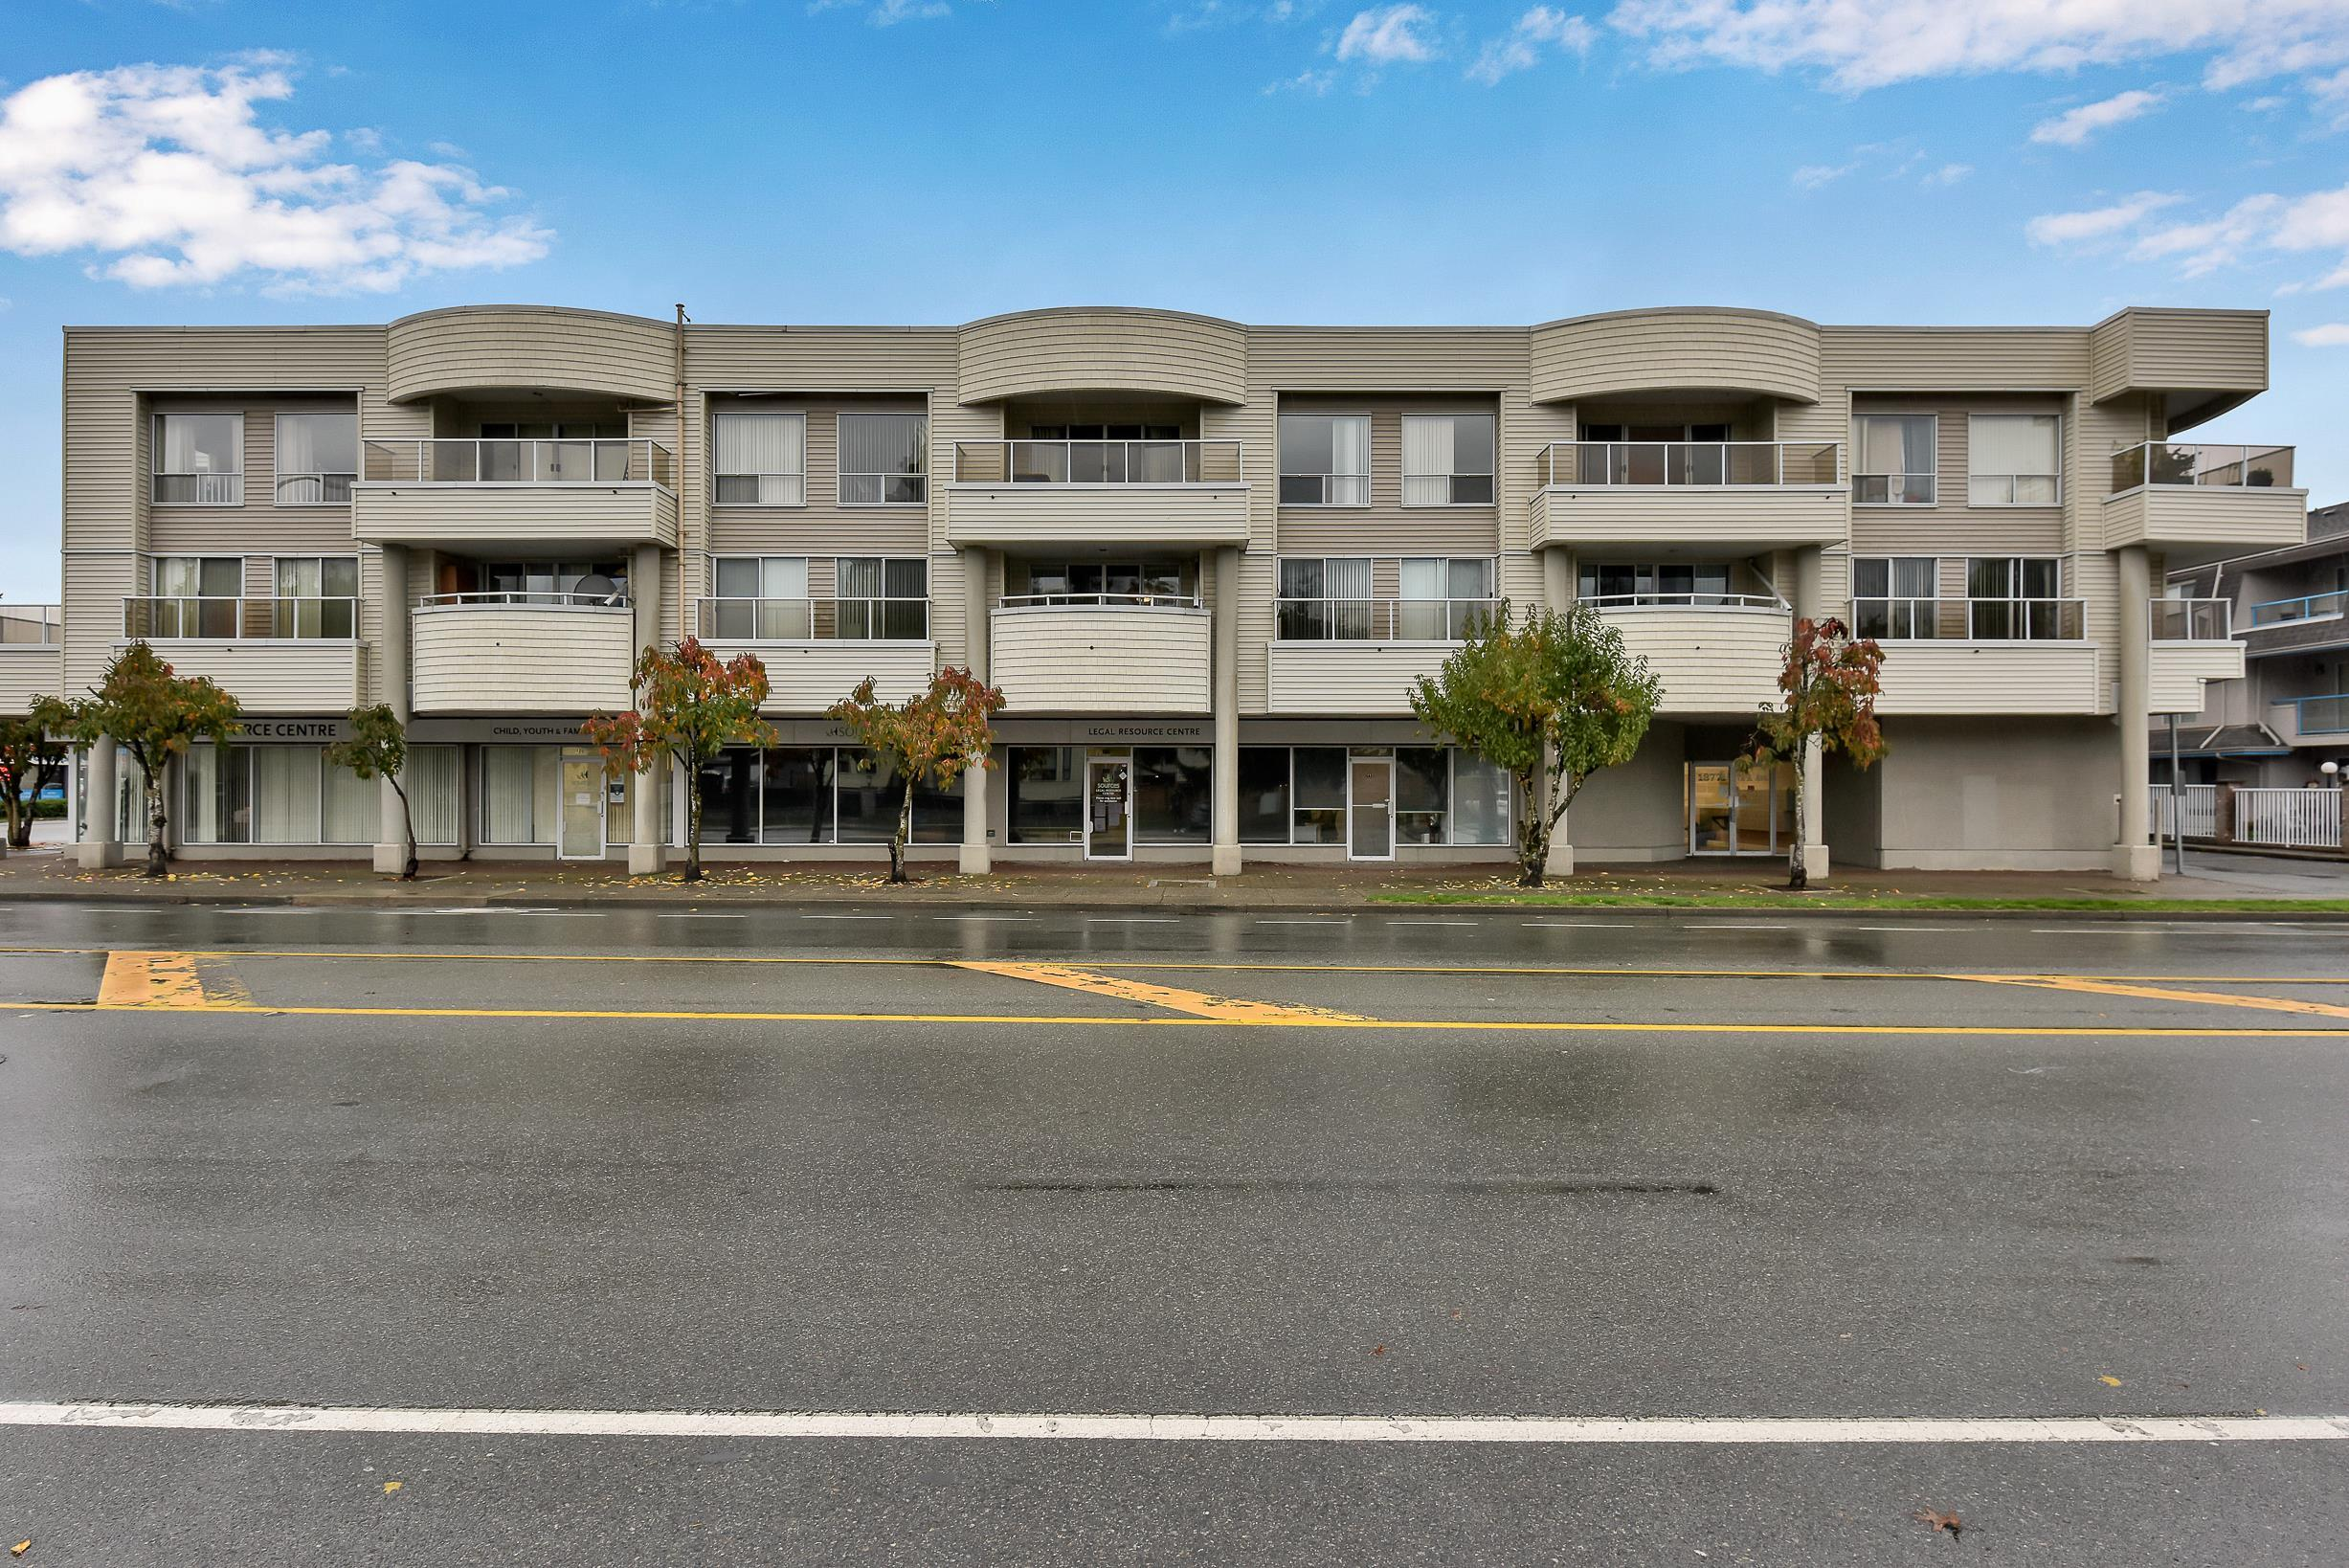 302 13771 72A AVENUE - East Newton Apartment/Condo for sale, 2 Bedrooms (R2627490) - #1